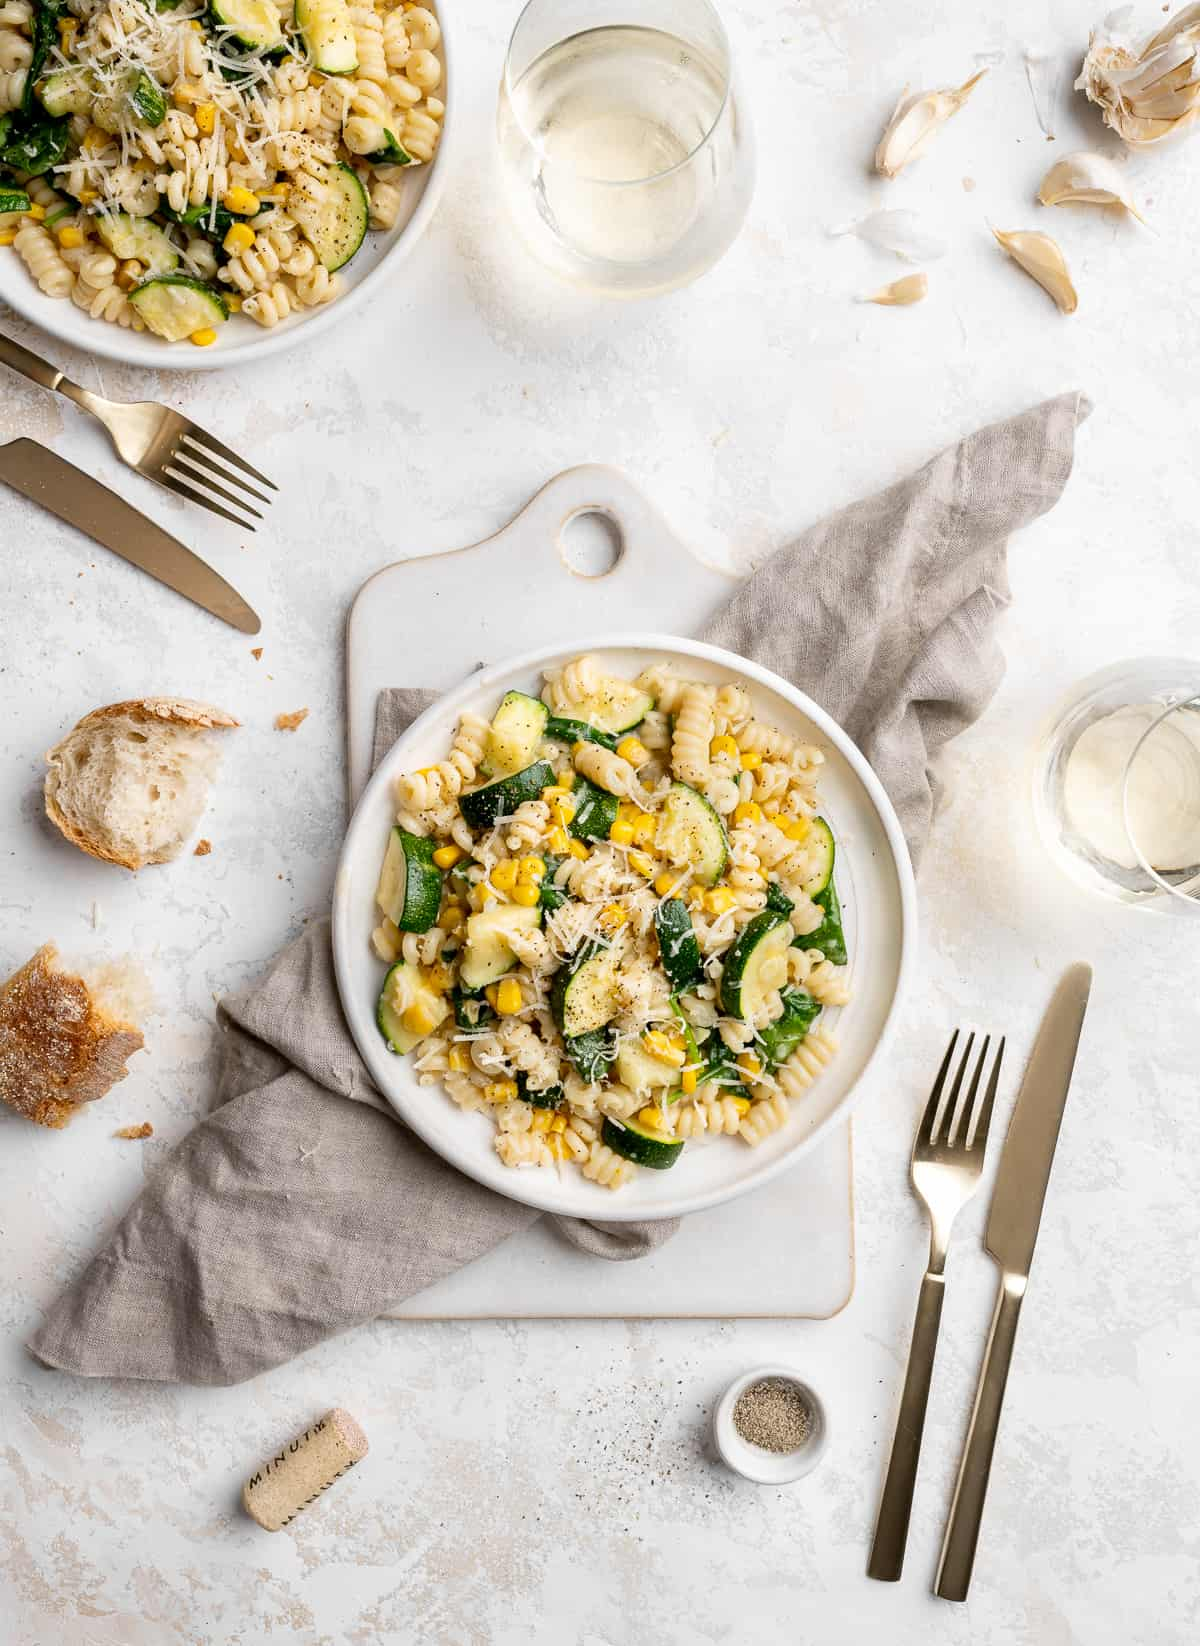 vegan creamy summer pasta with zucchini, corn and spinach on a white plate topped with parmesan cheese